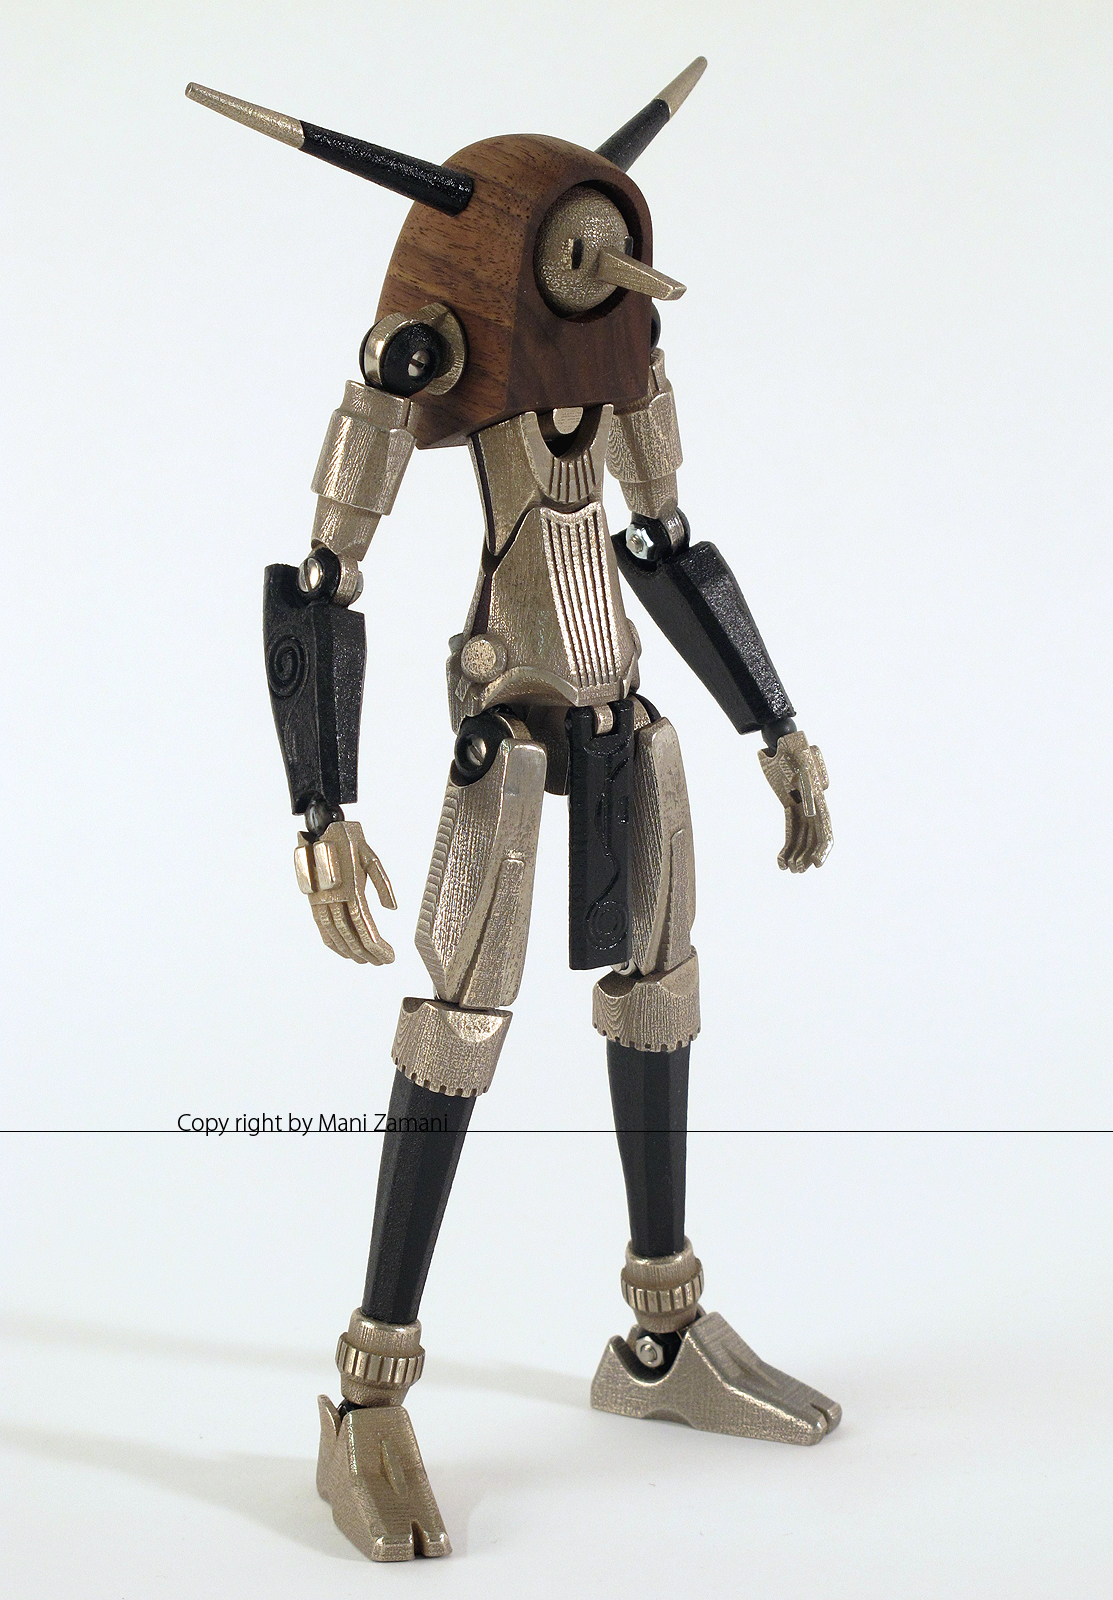 Mani Zamani,poseable action figure,3d printed stainless steal,robot toy,Craftmanship